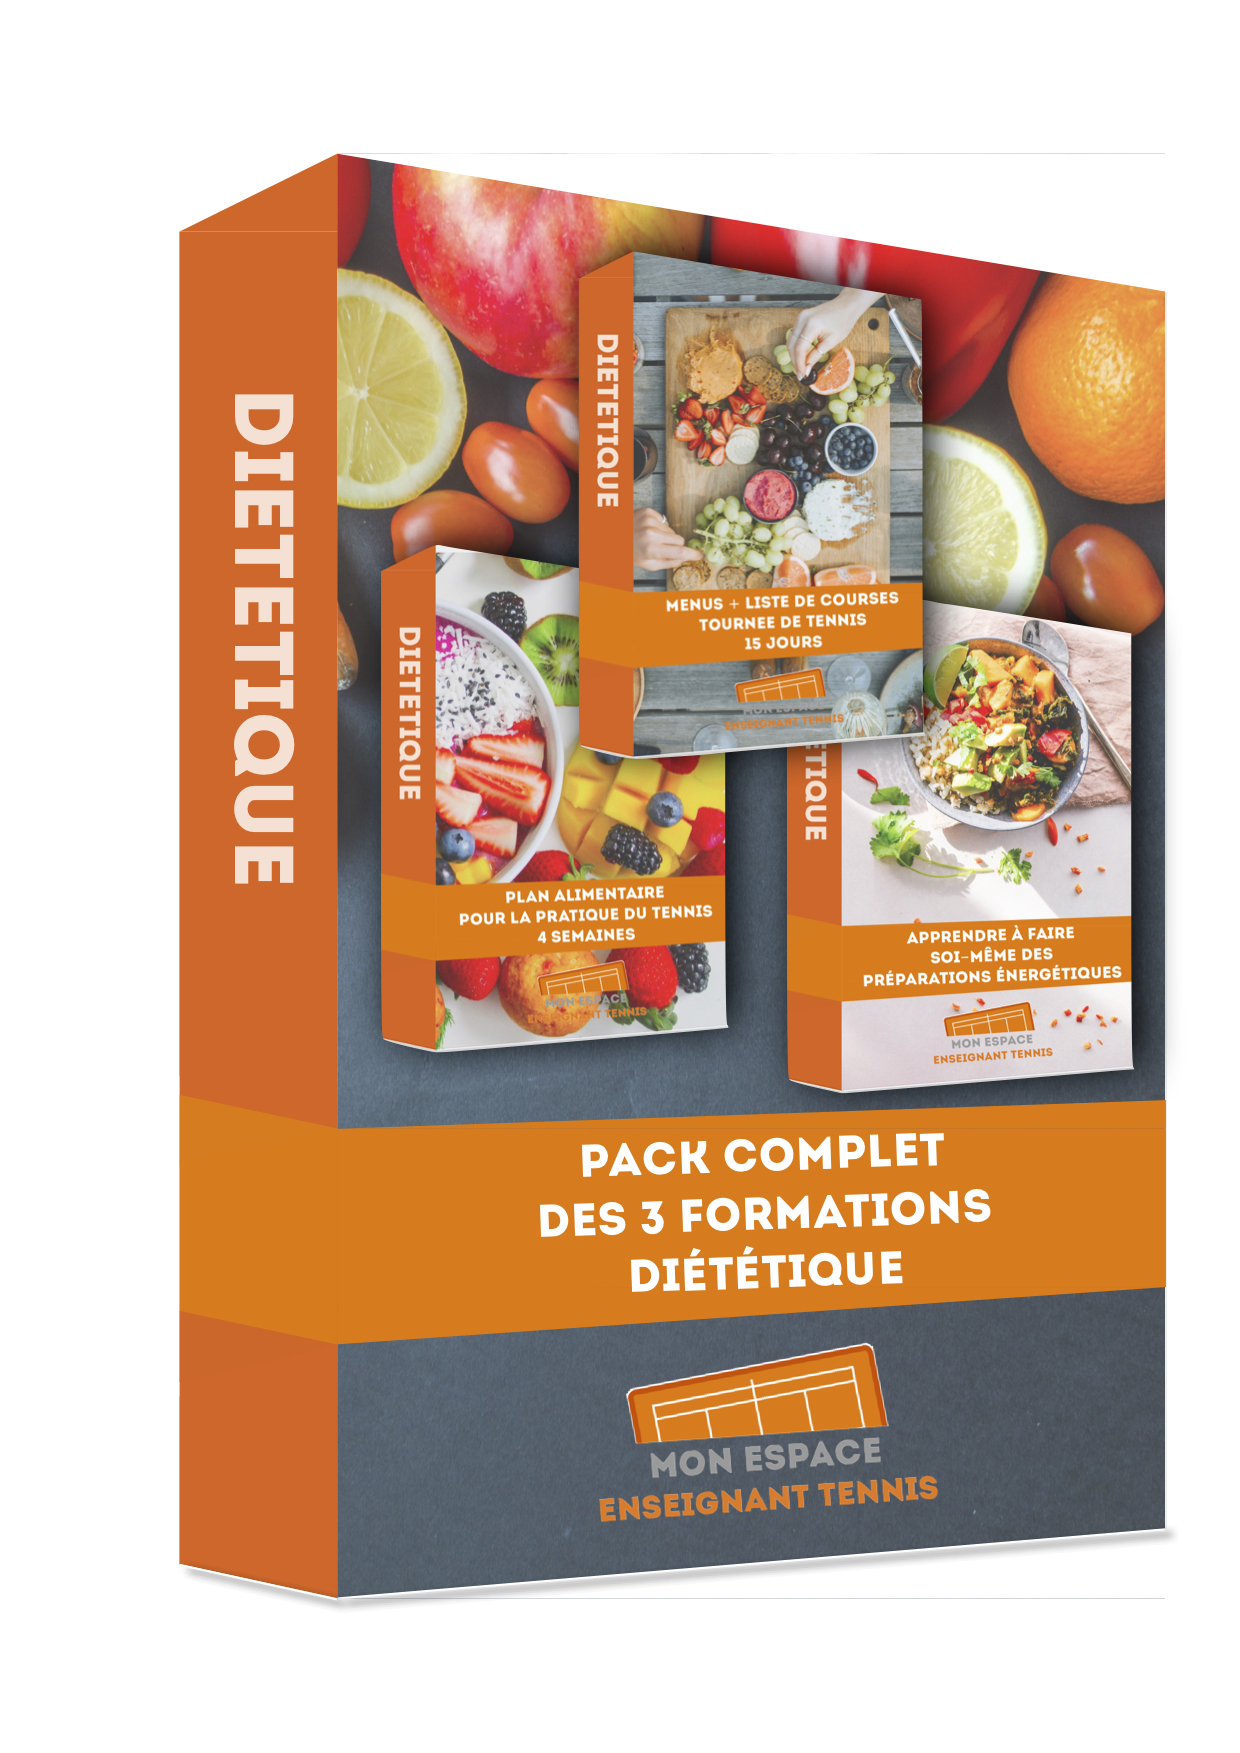 formation, dietetique pack complet tennis